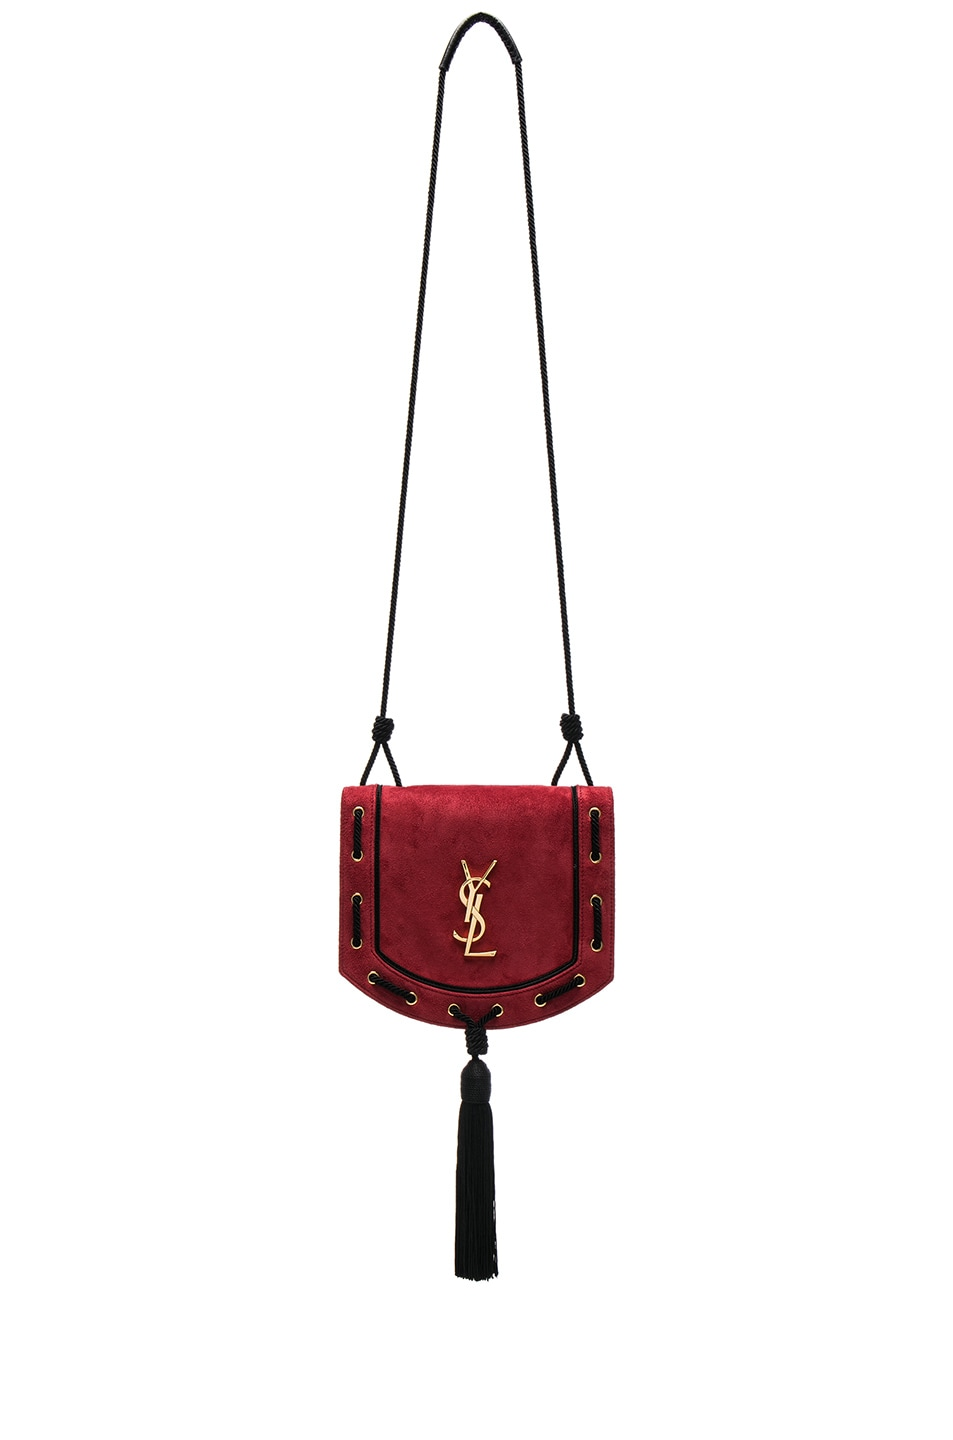 Image 1 of Saint Laurent Medium Monogramme Fetish Satchel in Lipstick Red & Black